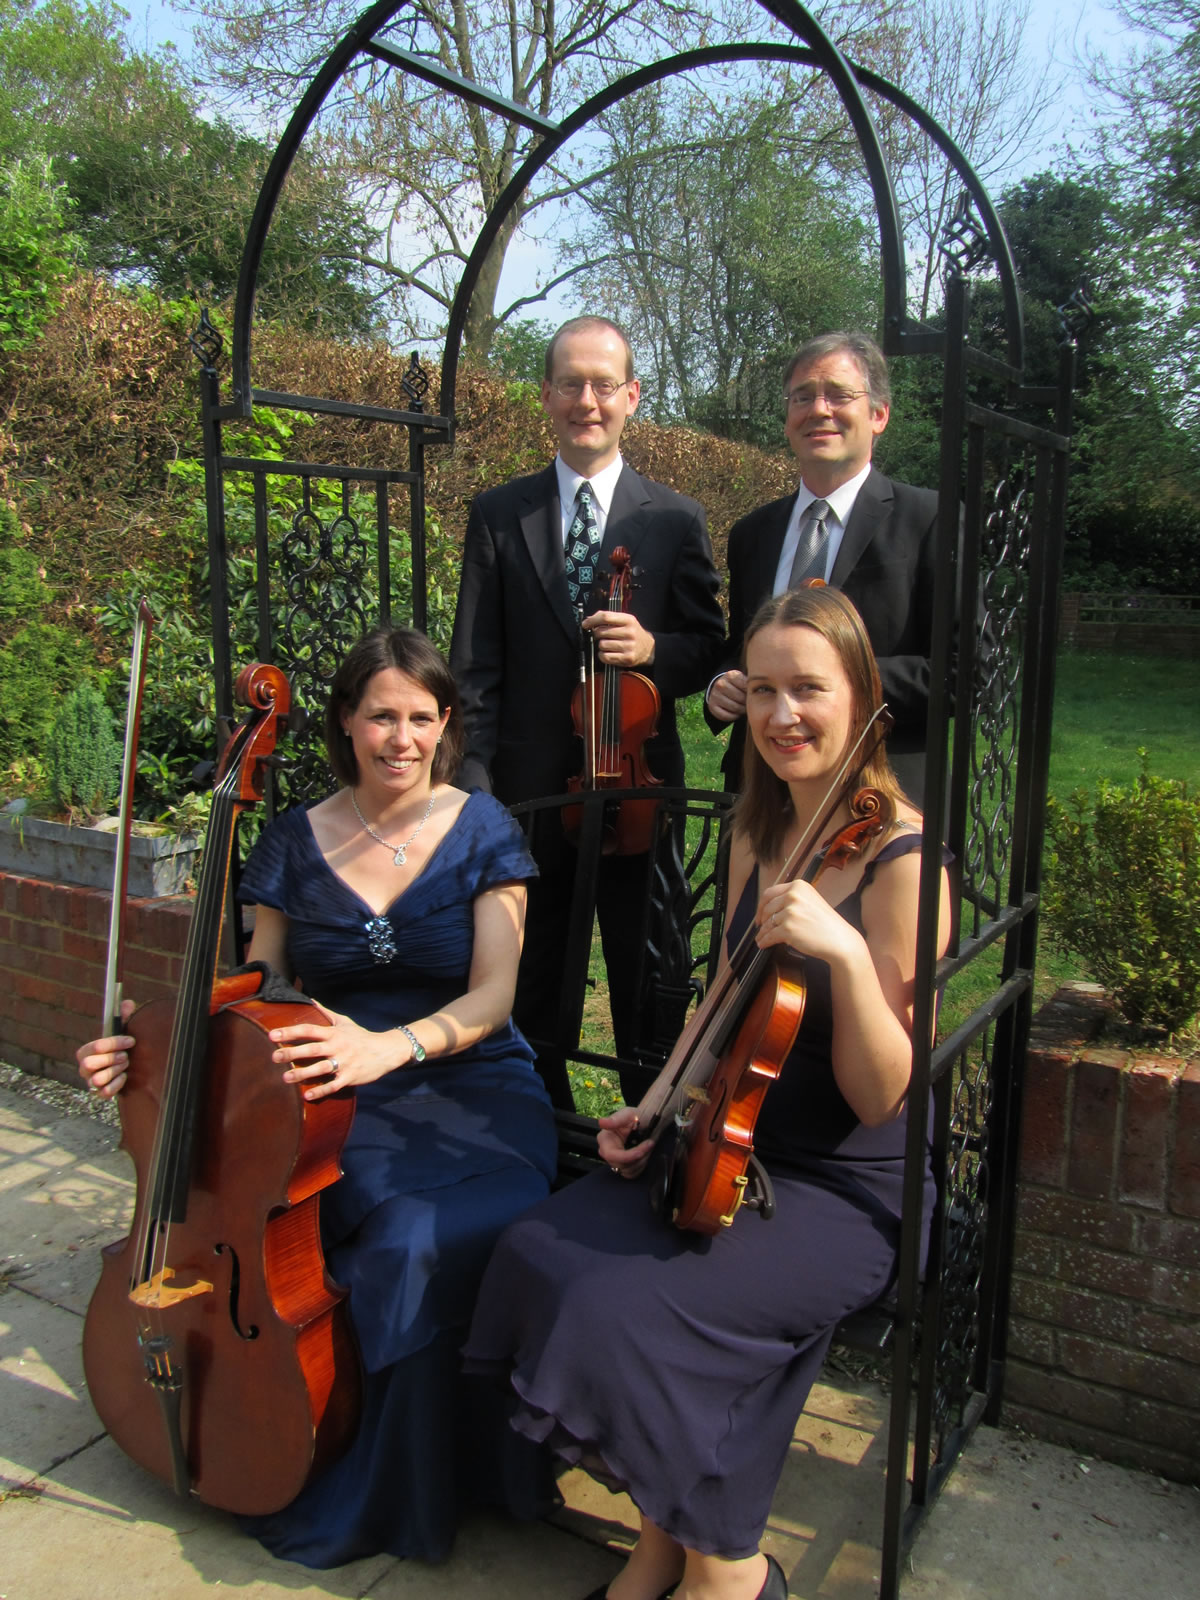 Manor House Music Buckinghamshire, Hertfordshire and Bedfordshire based wedding string quartet